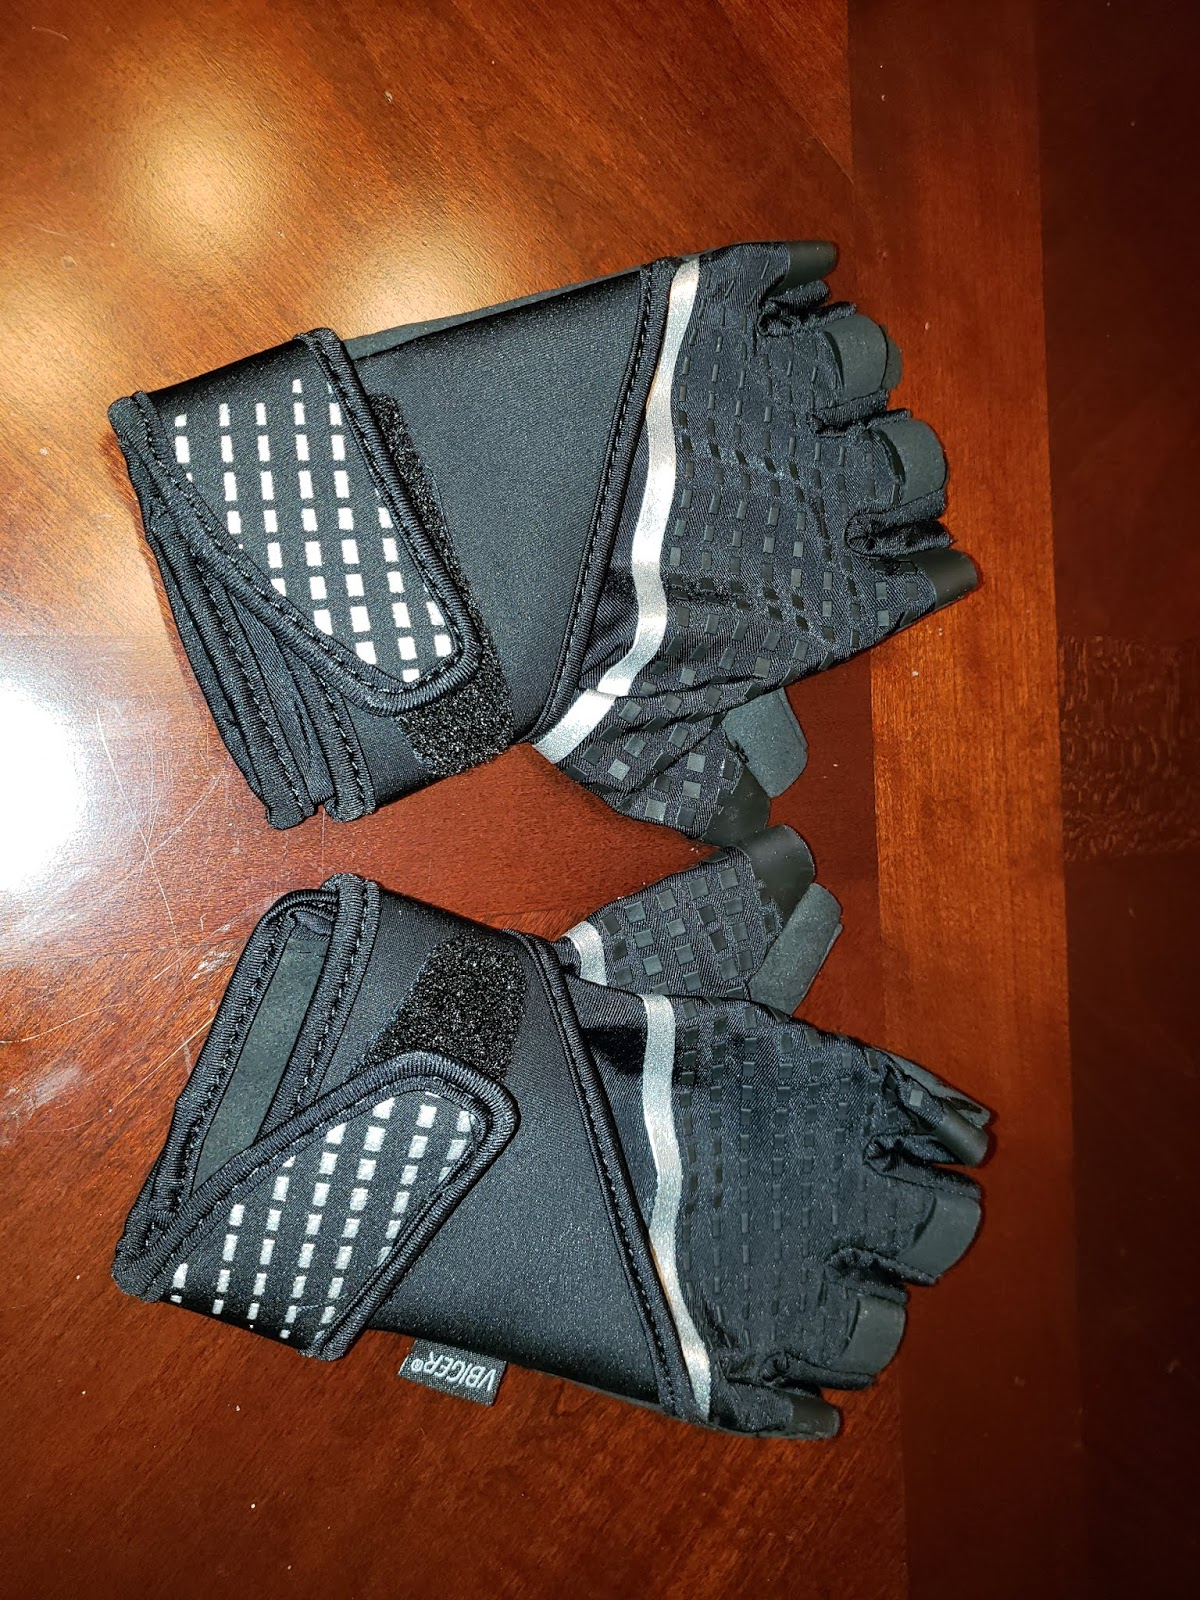 Comfy to use workout gloves